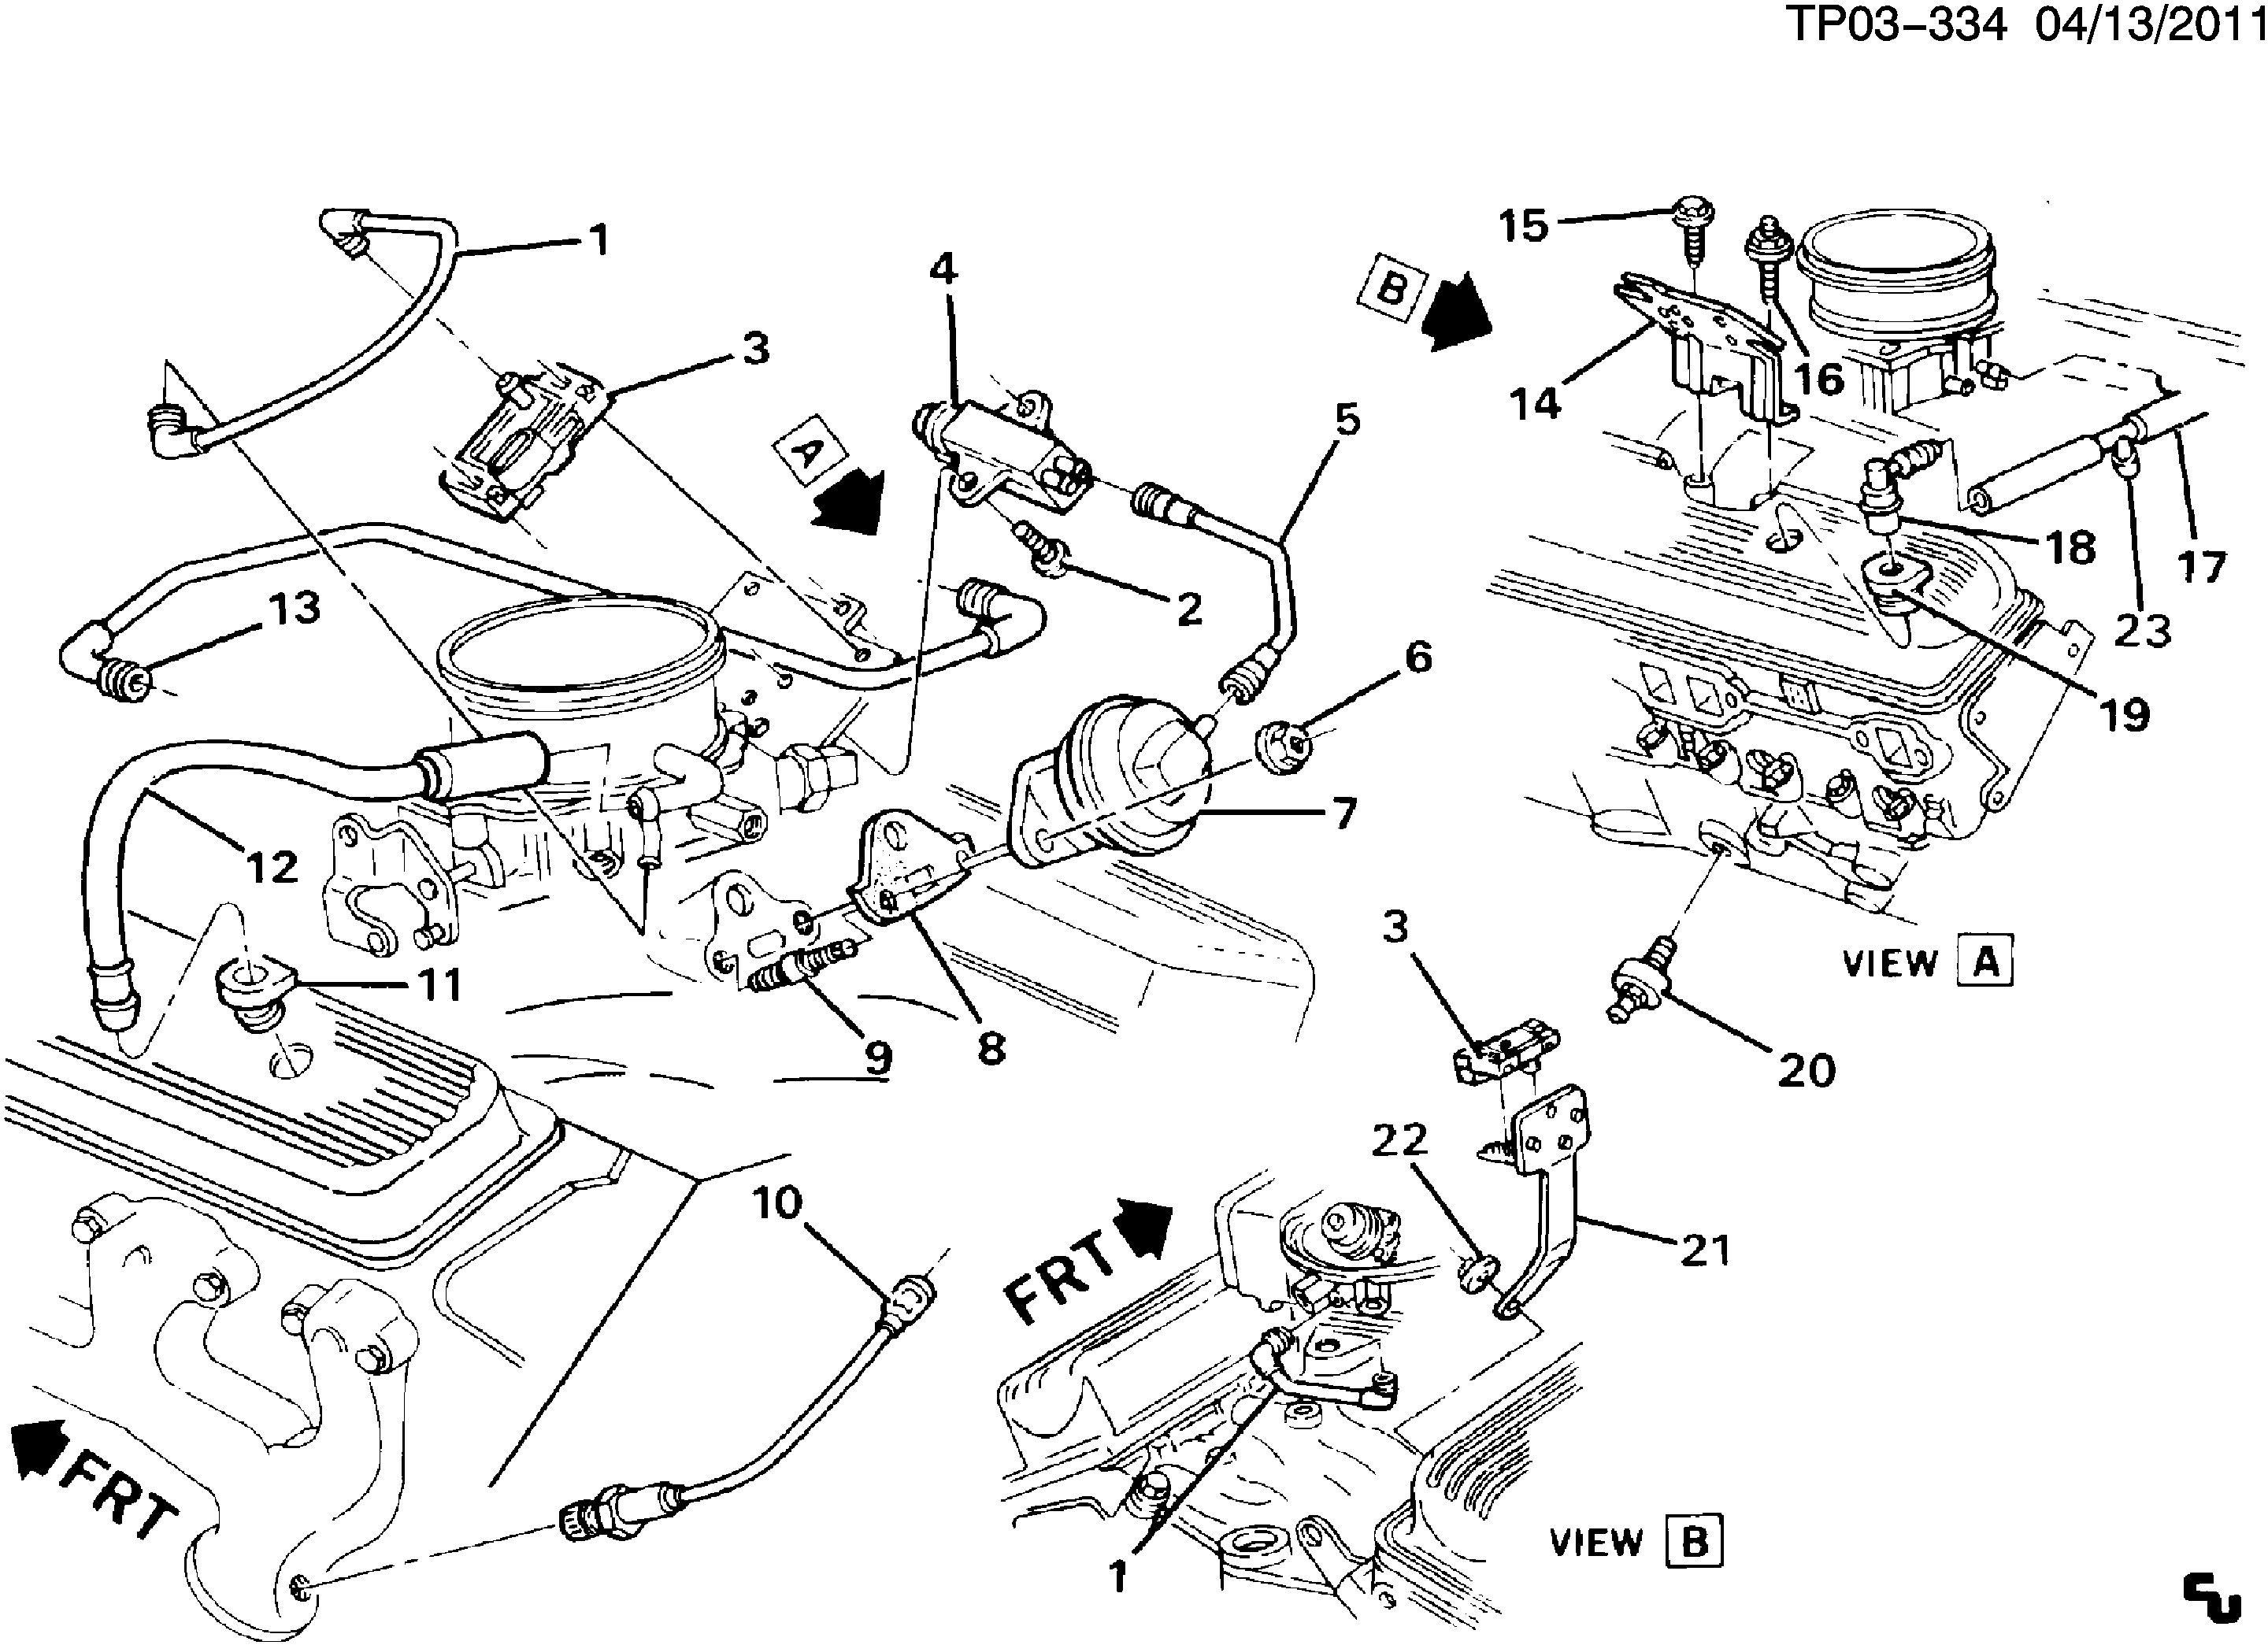 Wiring Diagram Database: Chevy 350 Engine Parts Diagram